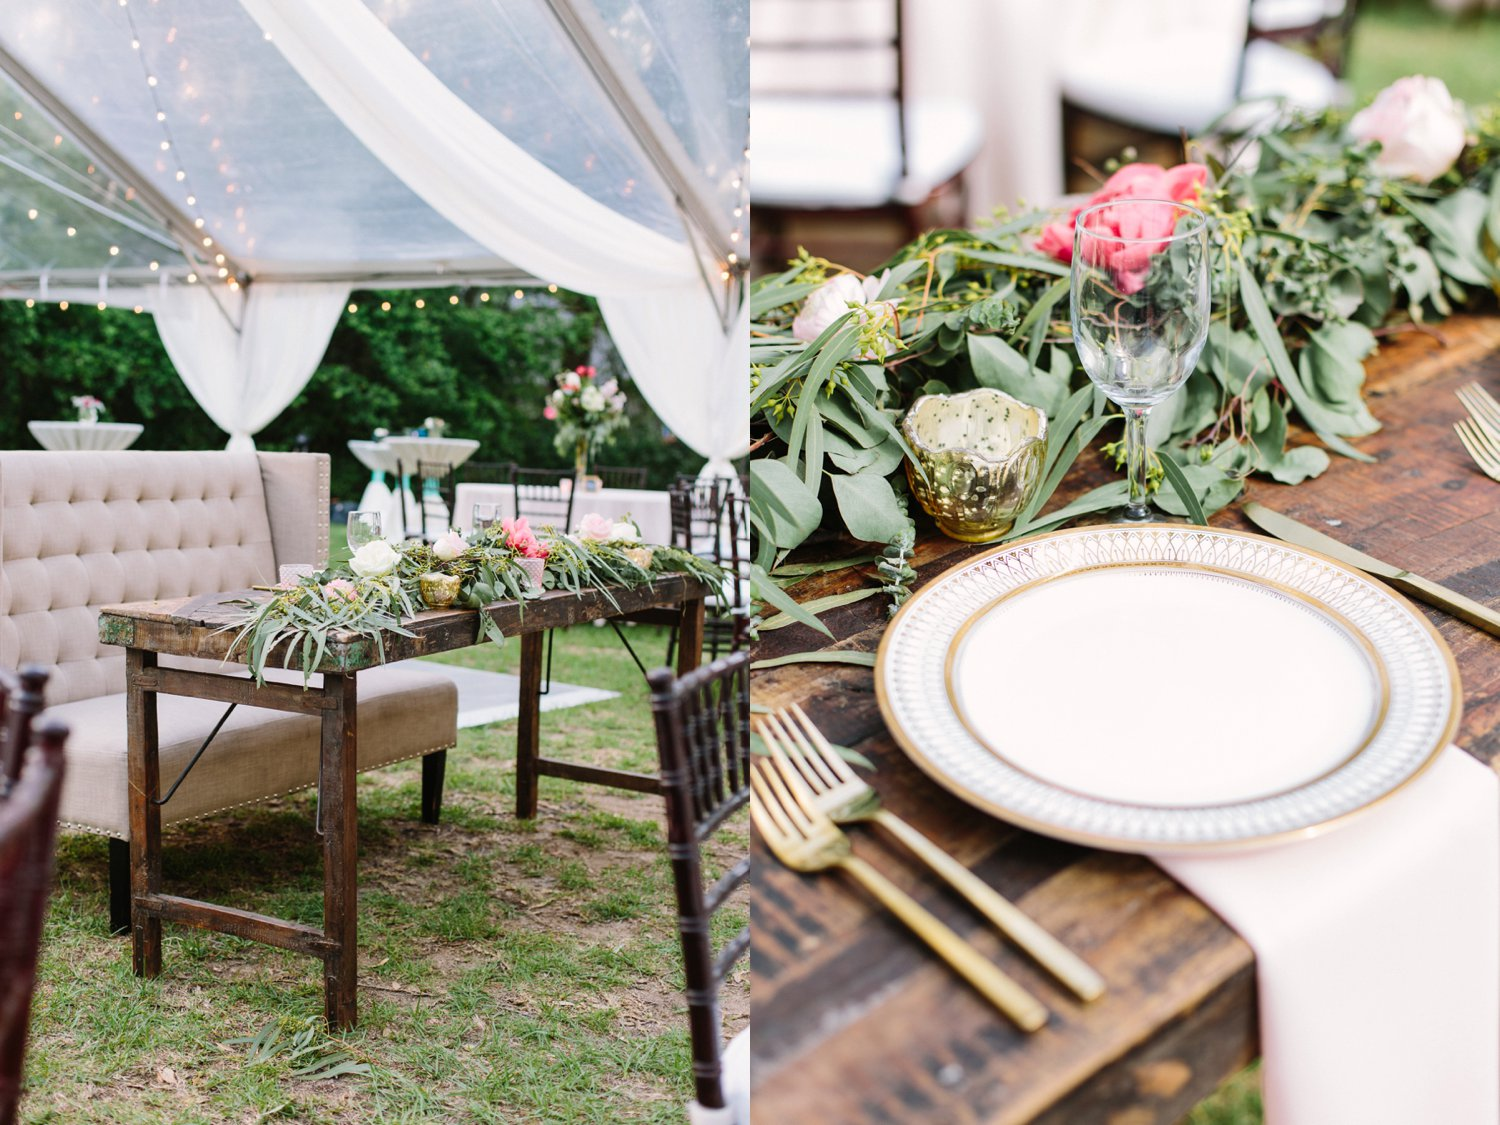 Lindsey_A_Miller_Photography_mcleod_plantation_wedding_charleston_south_carolina_clear_tent_spring_mod_events_060.jpg